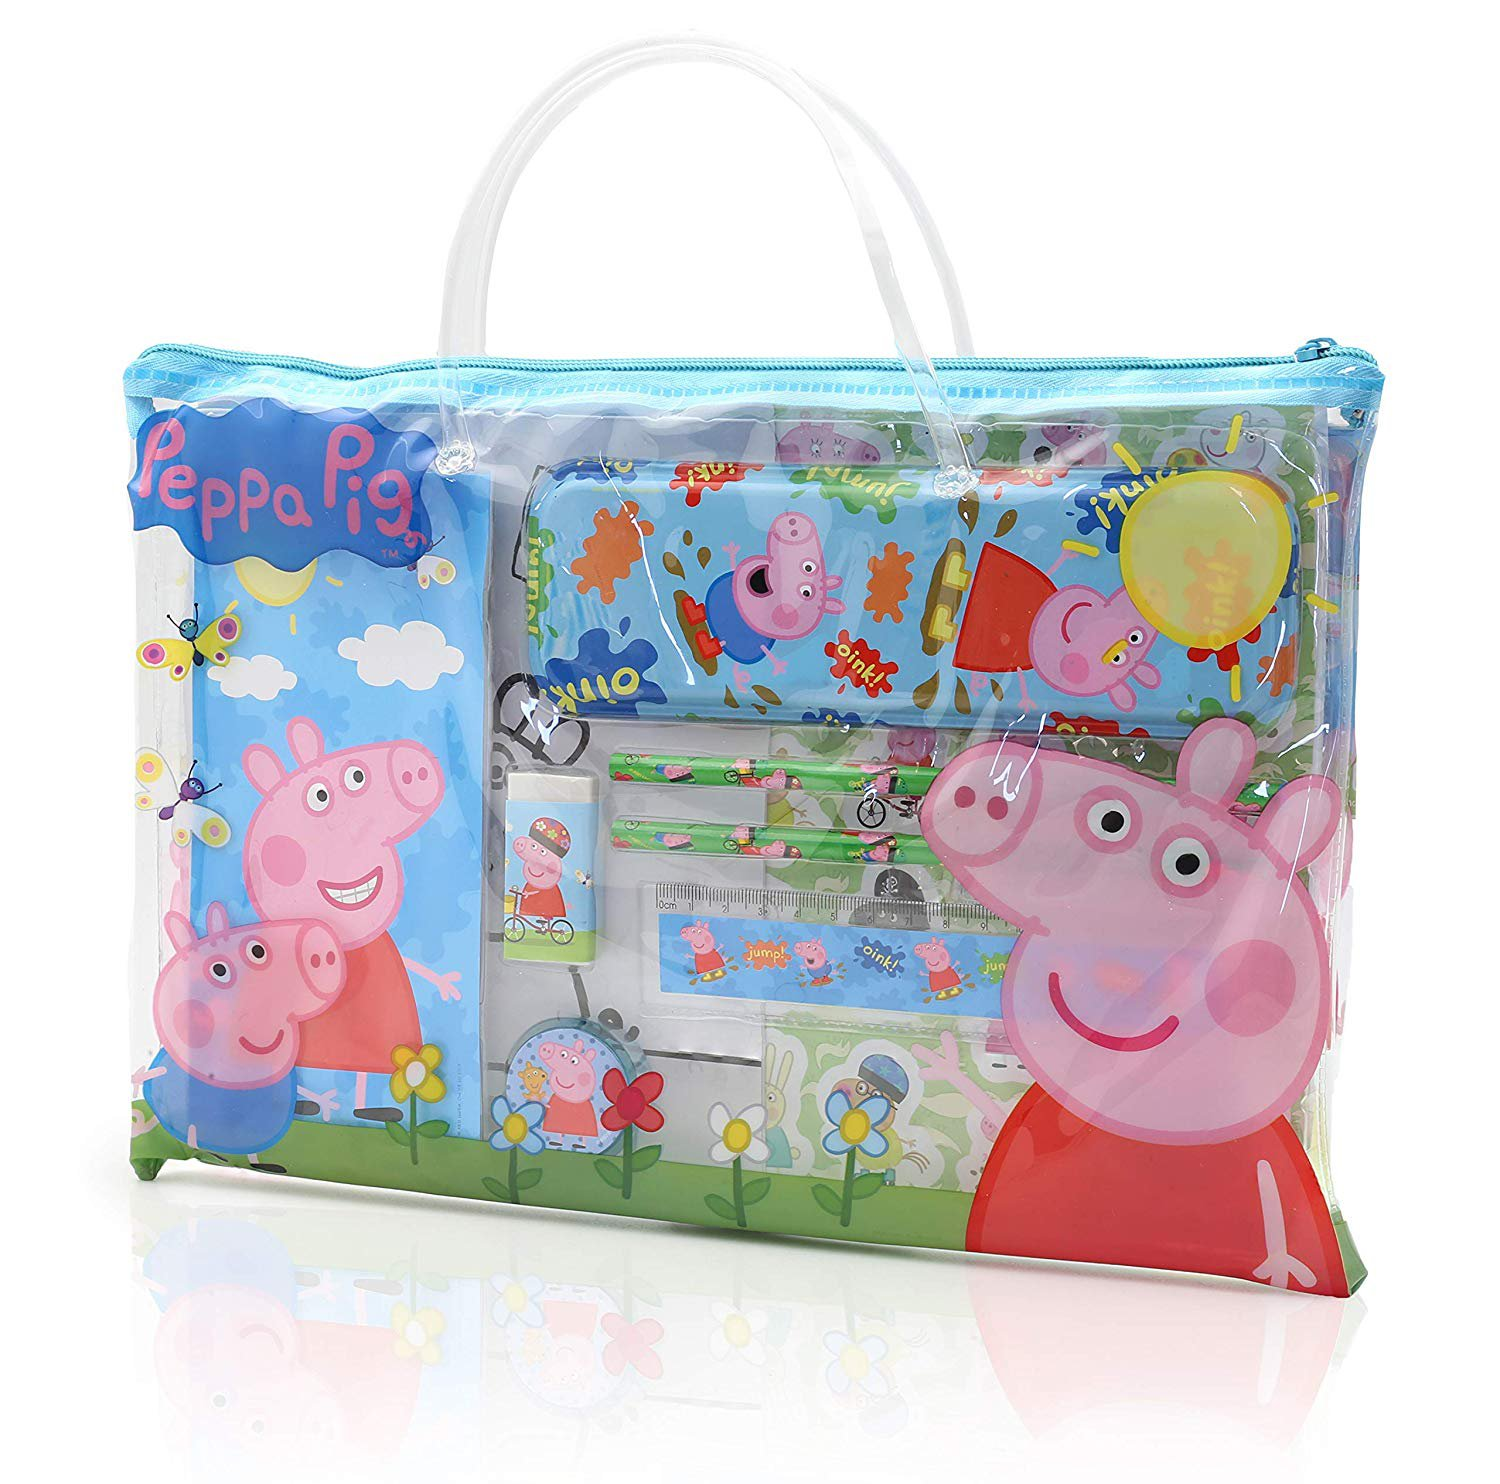 Peppa Pig Toys, Activity Travel Set Includes Carry Along Book Bag